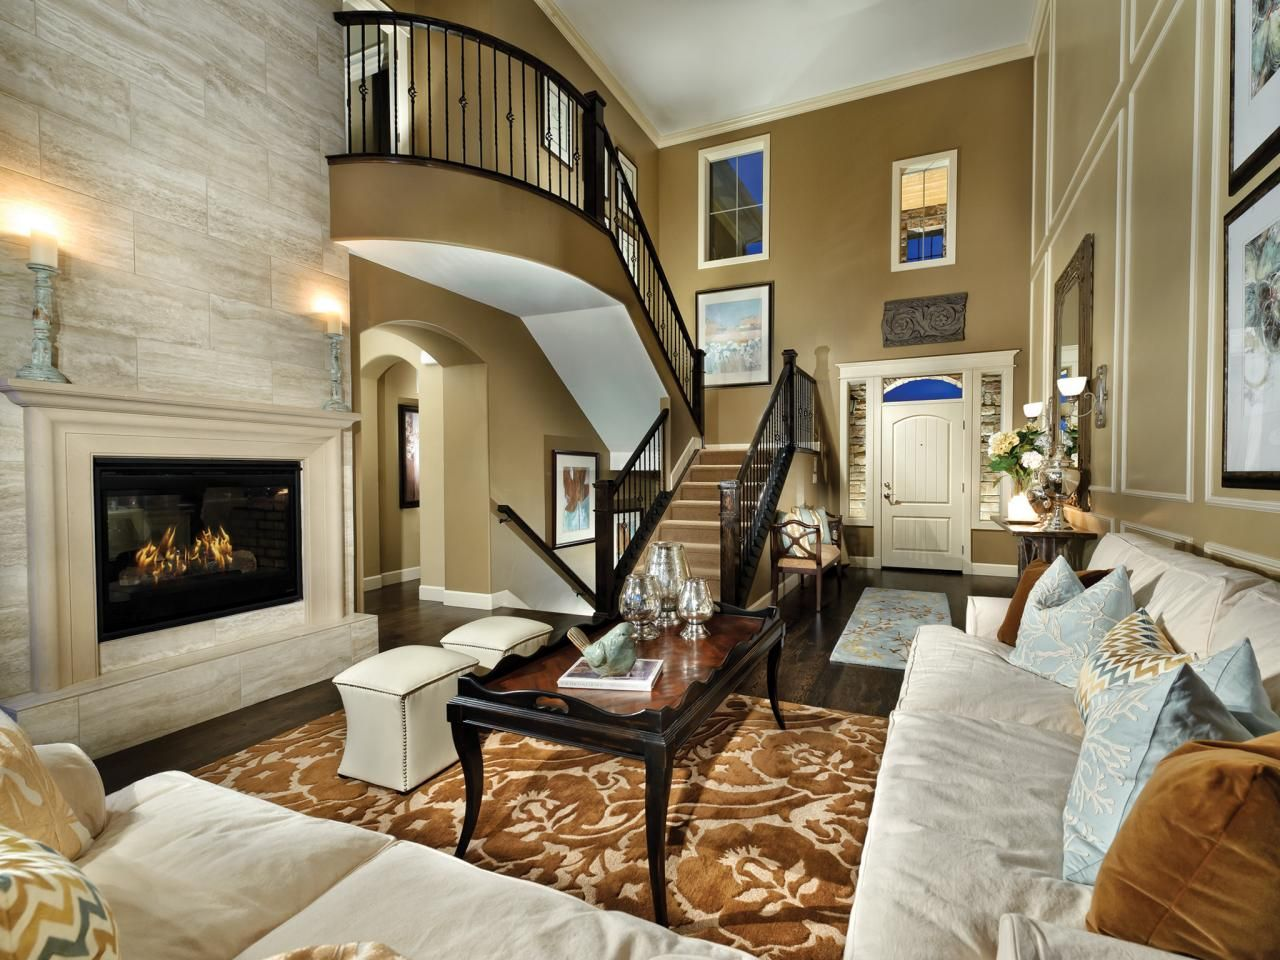 An Oversized Brownandwhite Floralpatterned Area Rug Pulls The Extraordinary Design Ideas For Living Rooms With Fireplace Review